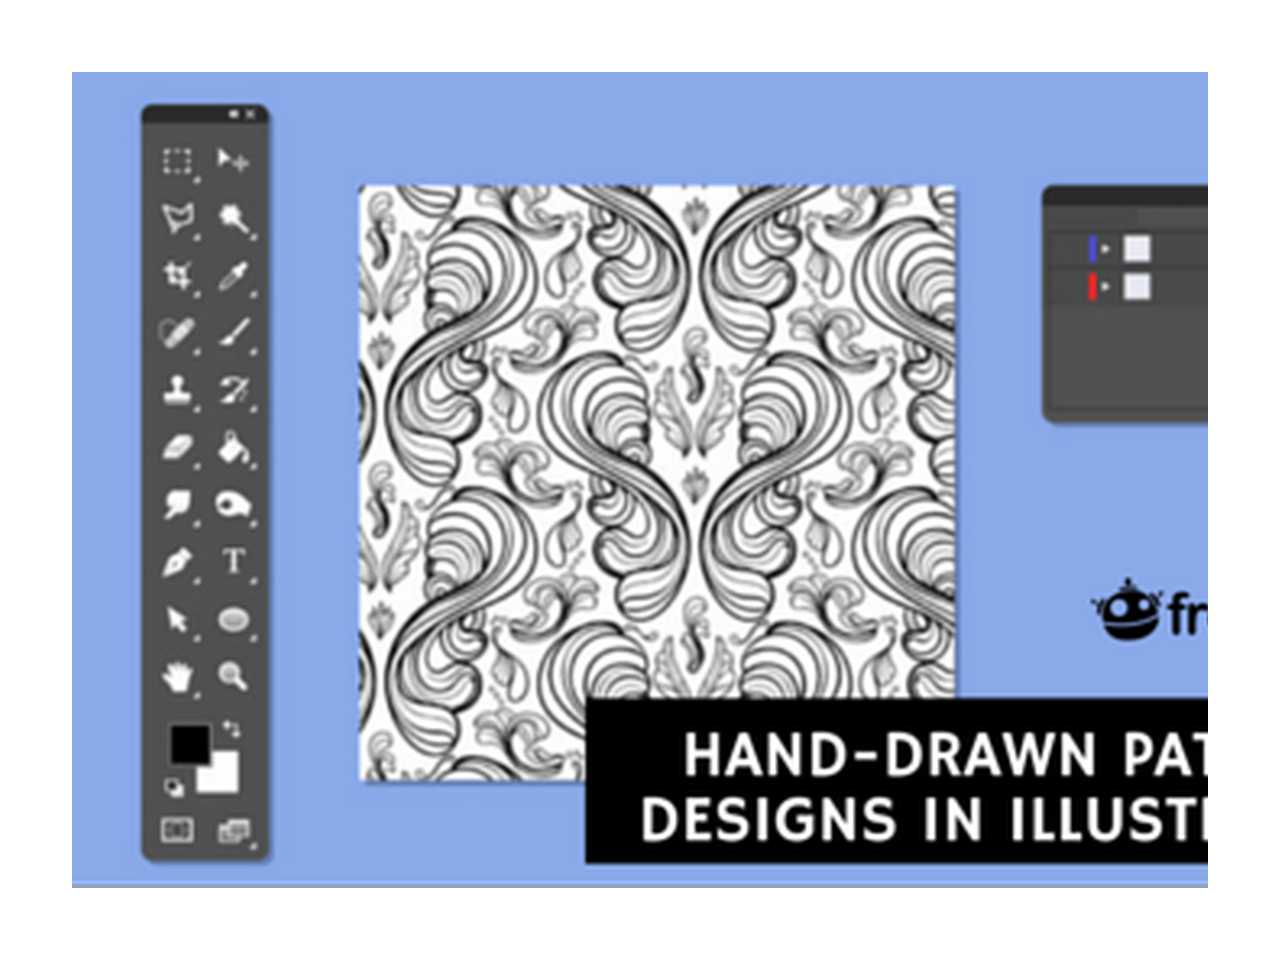 Scanned drawing design. Graphic make hand drawn